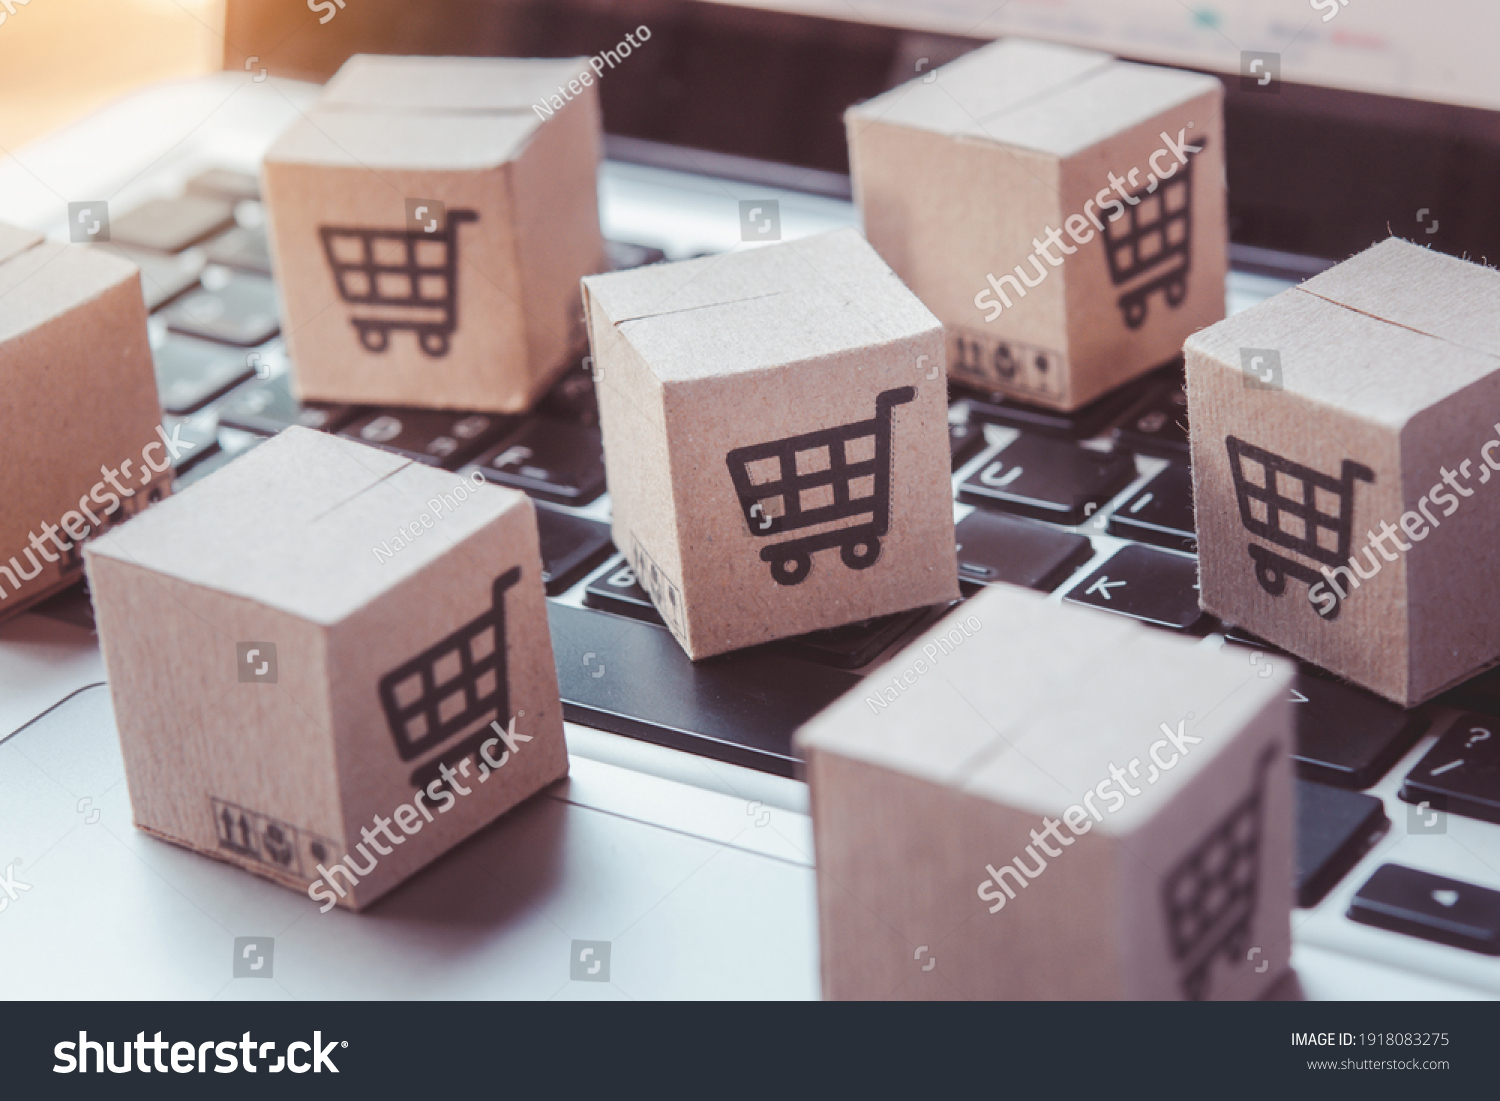 Shopping online. Cardboard box with a shopping cart logo on laptop keyboard. Shopping service on The online web. offers home delivery #1918083275